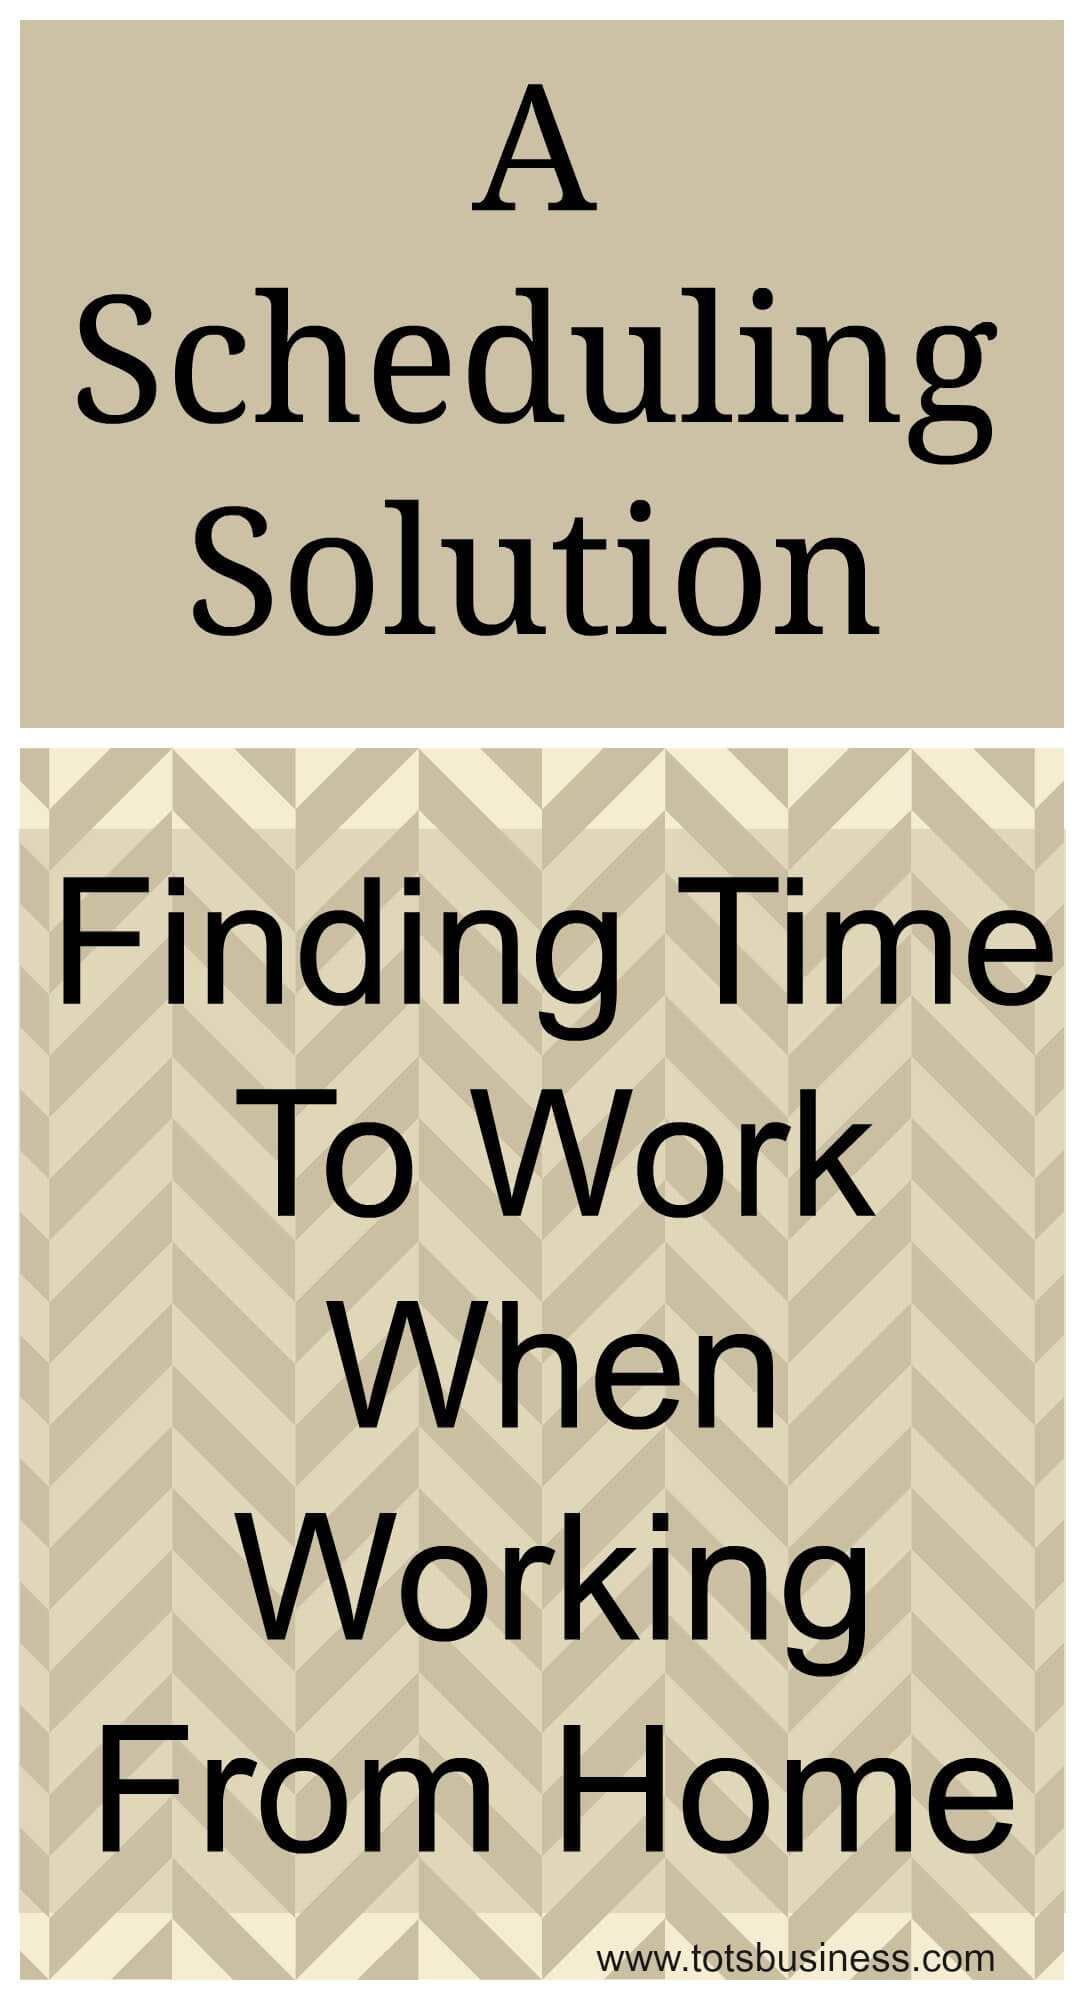 A Scheduling Solution - Finding Time To Work When Working From Home